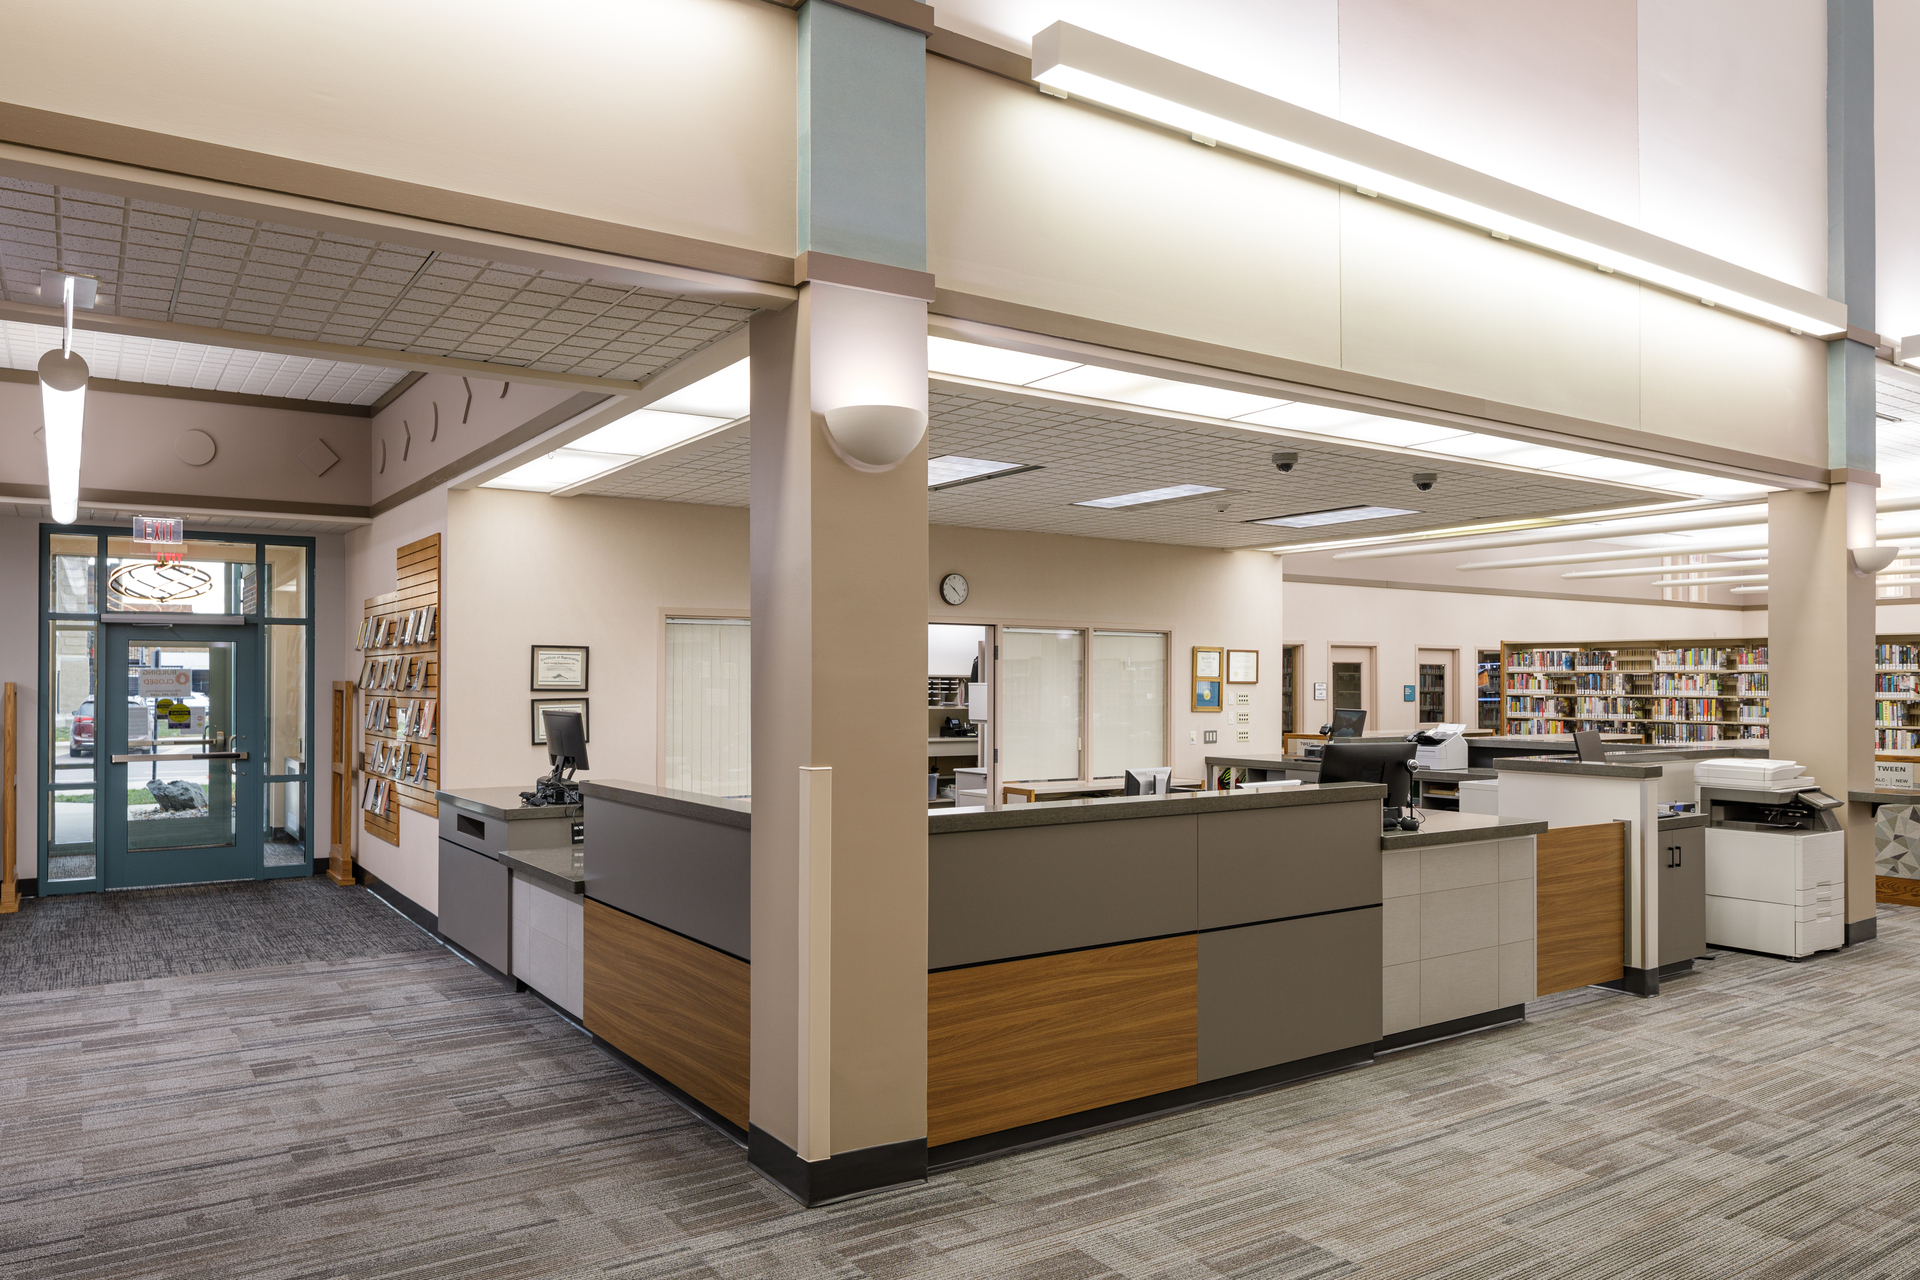 perry-public-library-dras-cases-1920x1920